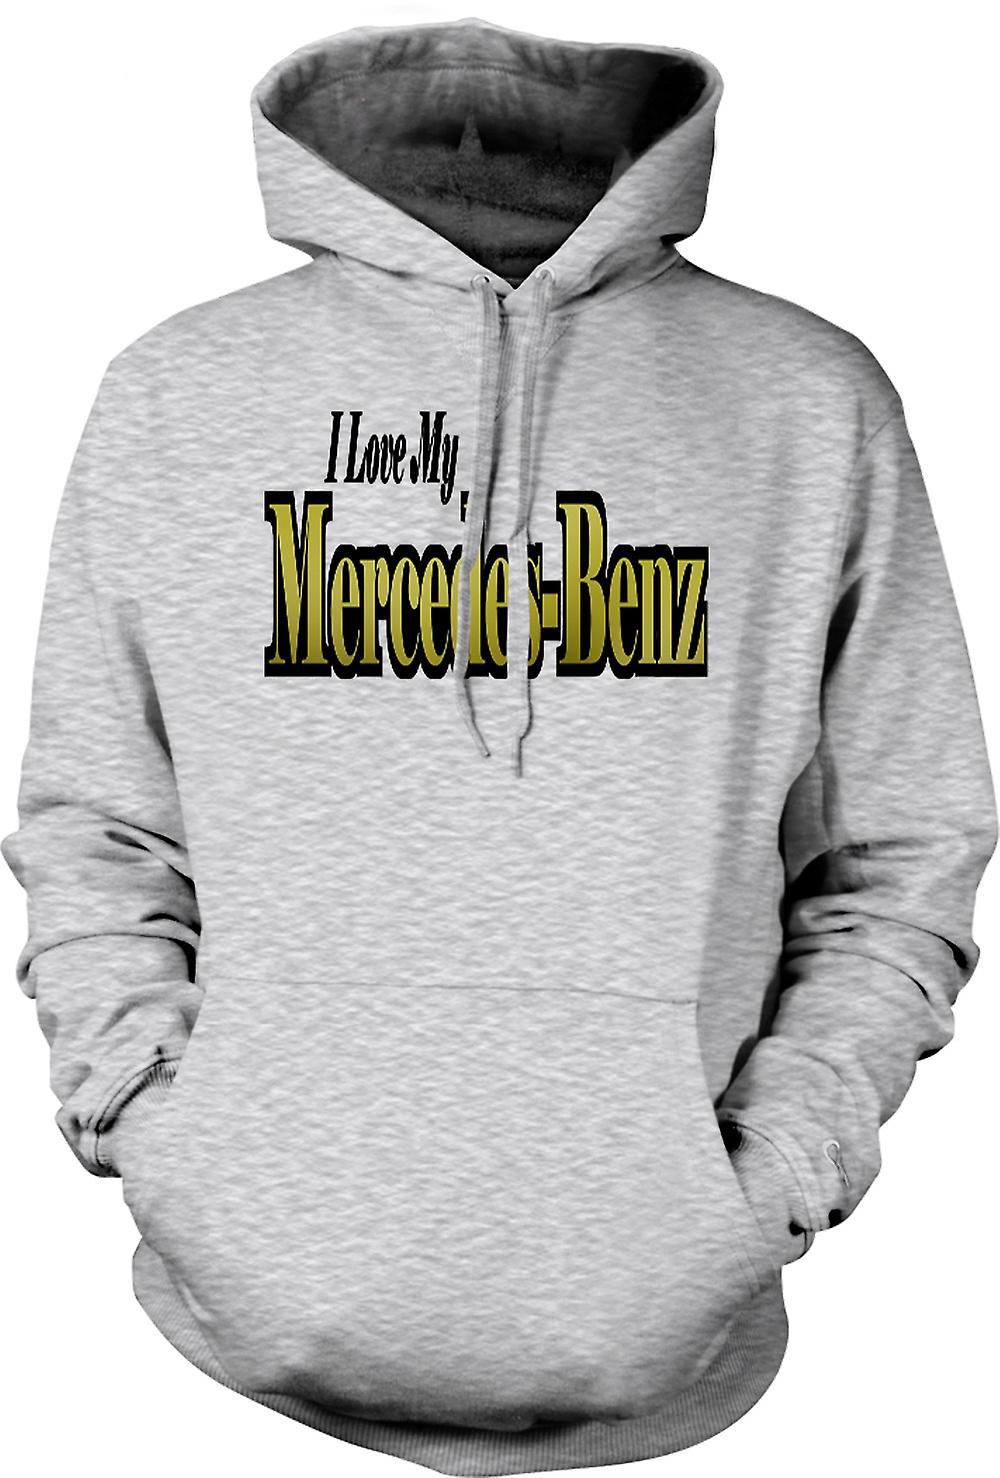 Mens Hoodie - I Love My Mercedes Benz - Car Enthusiast